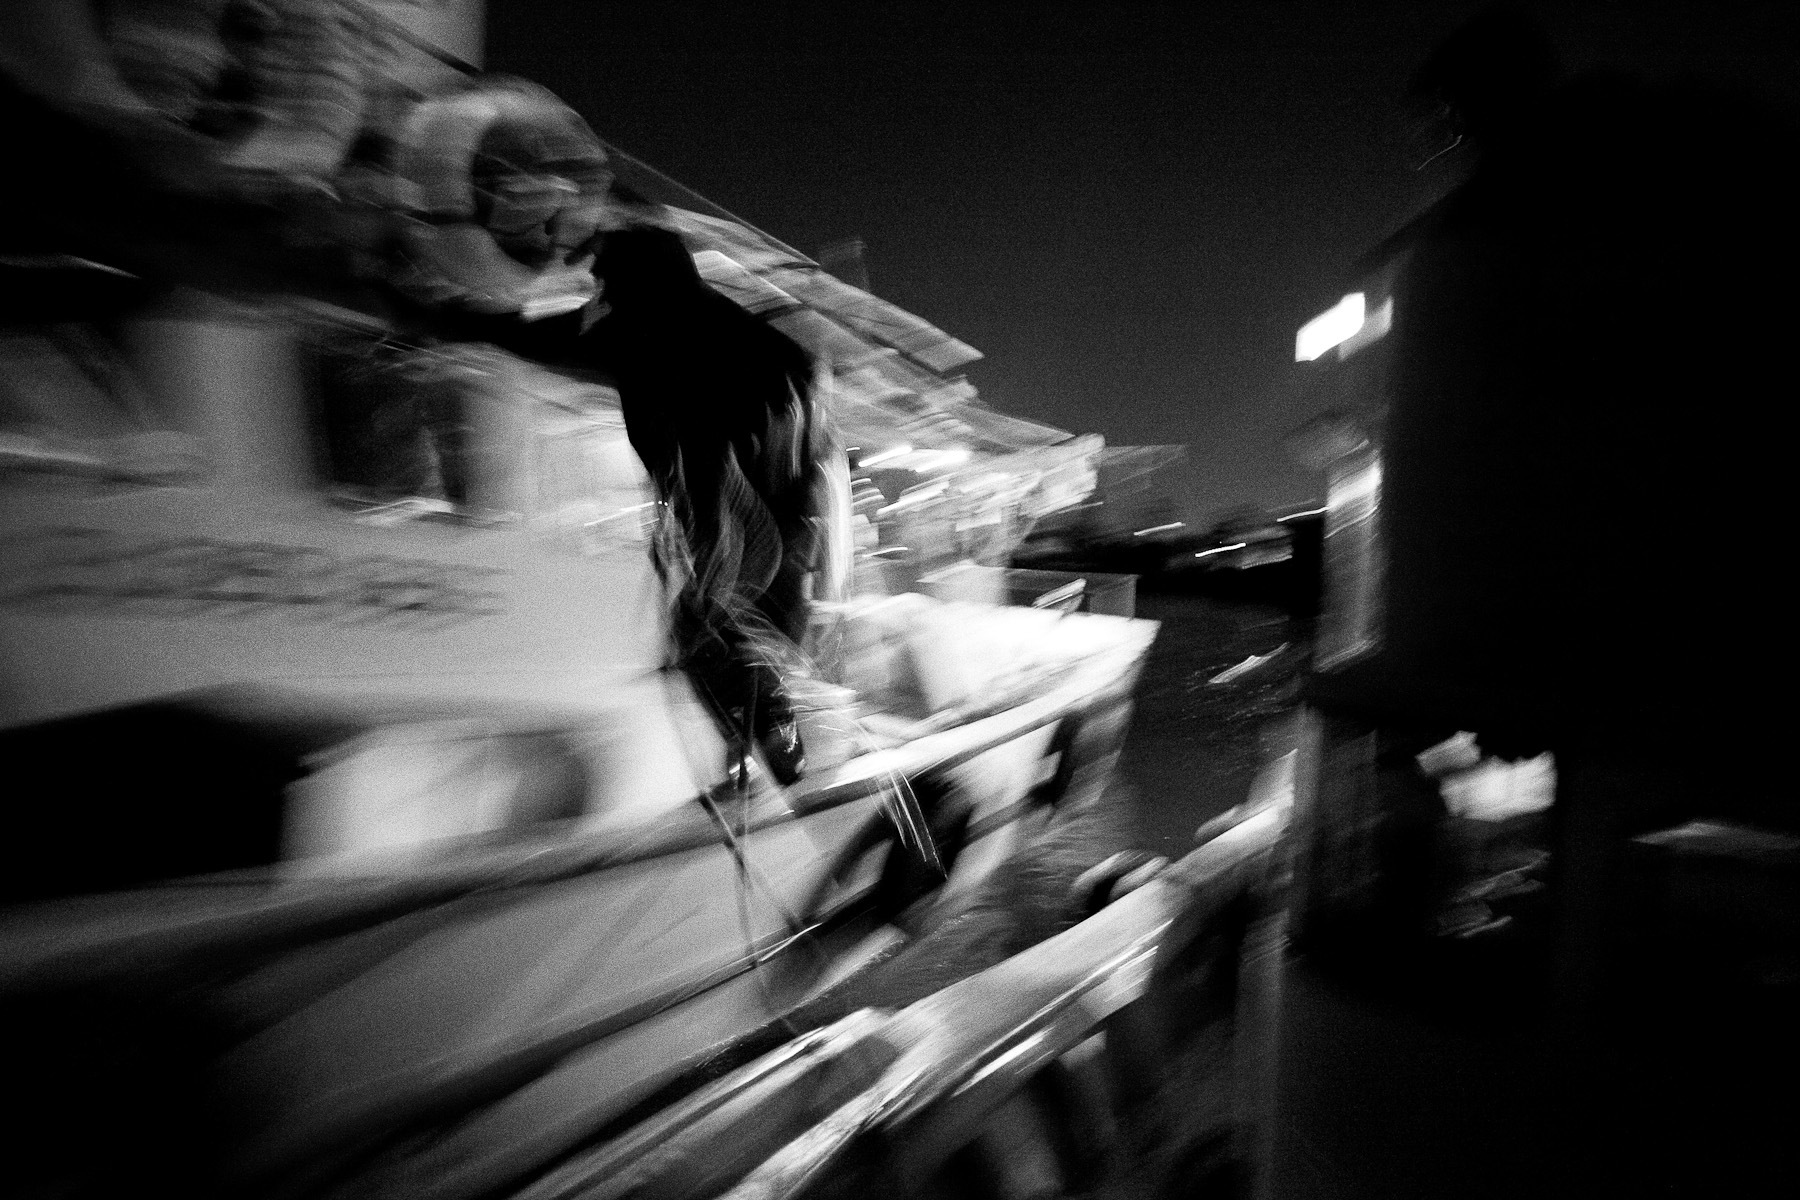 A fisherman jumps onto a friend's boat to tie them together as they stop to help each other with sorting the fish on the Marmara sea off the coast of Istanbul on 22nd June 2010.